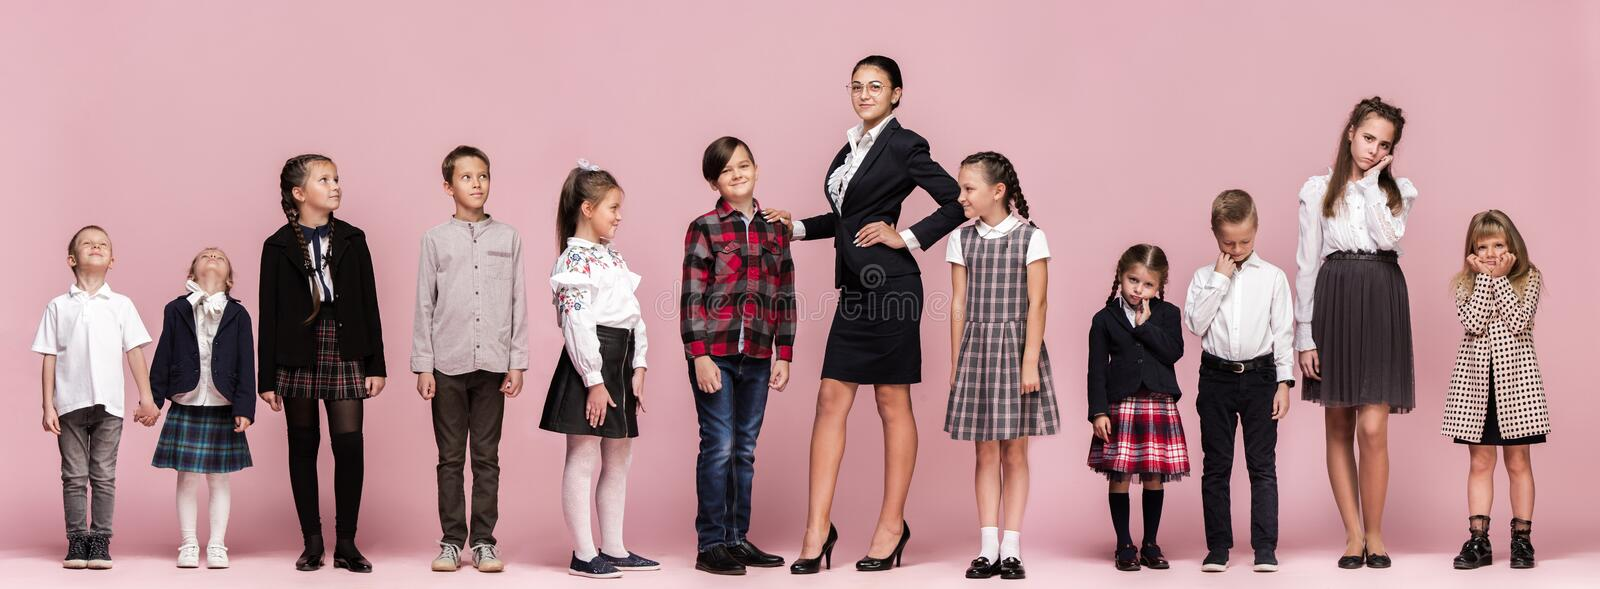 Cute stylish children on pink studio background. The beautiful teen girls and boy standing together stock photography